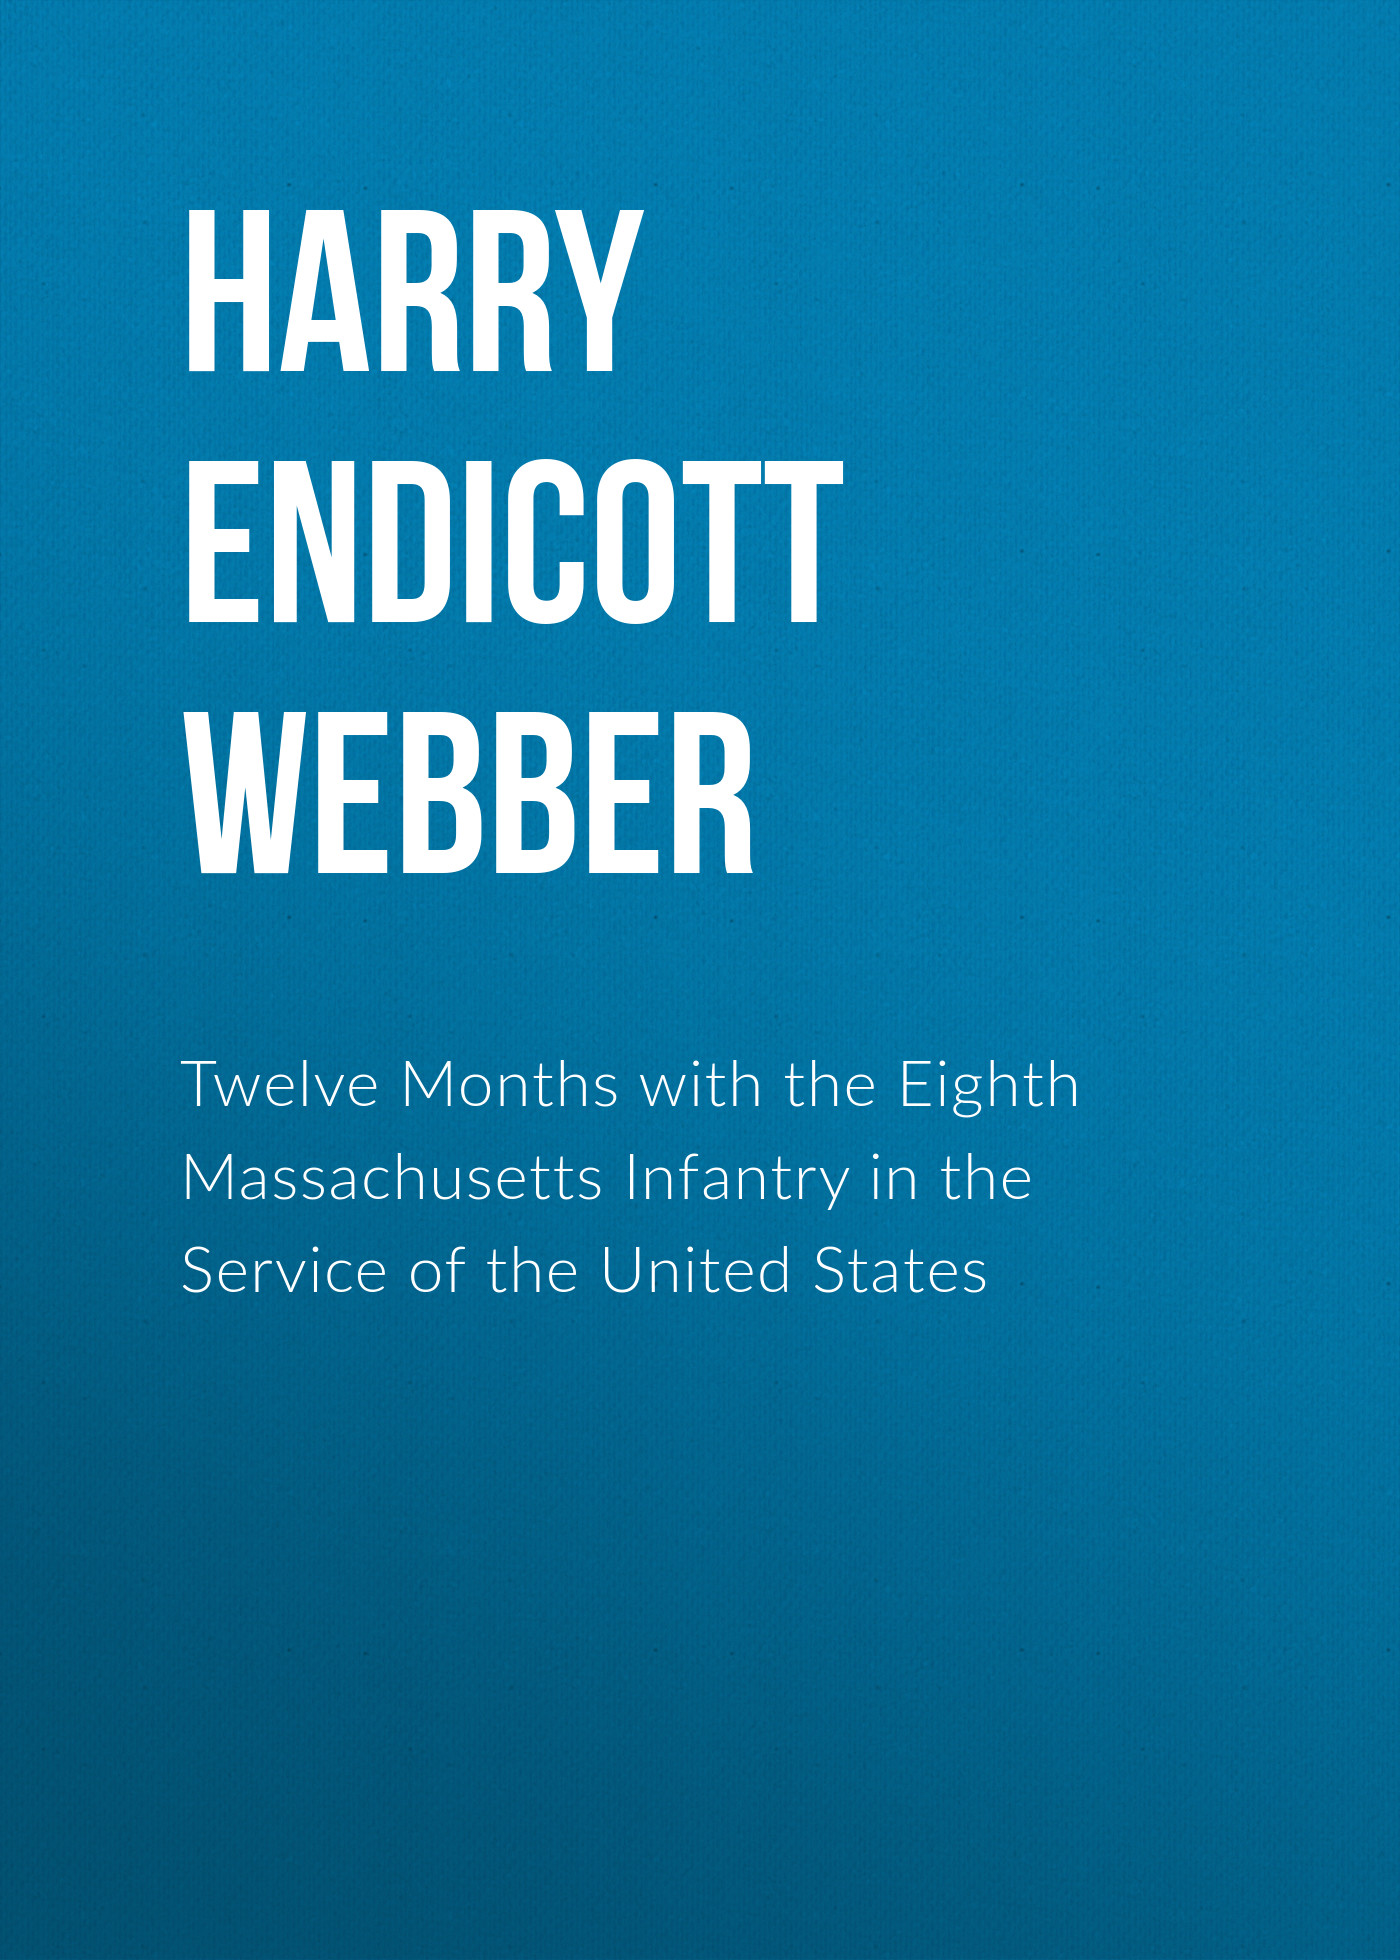 Harry Endicott Webber Twelve Months with the Eighth Massachusetts Infantry in the Service of the United States